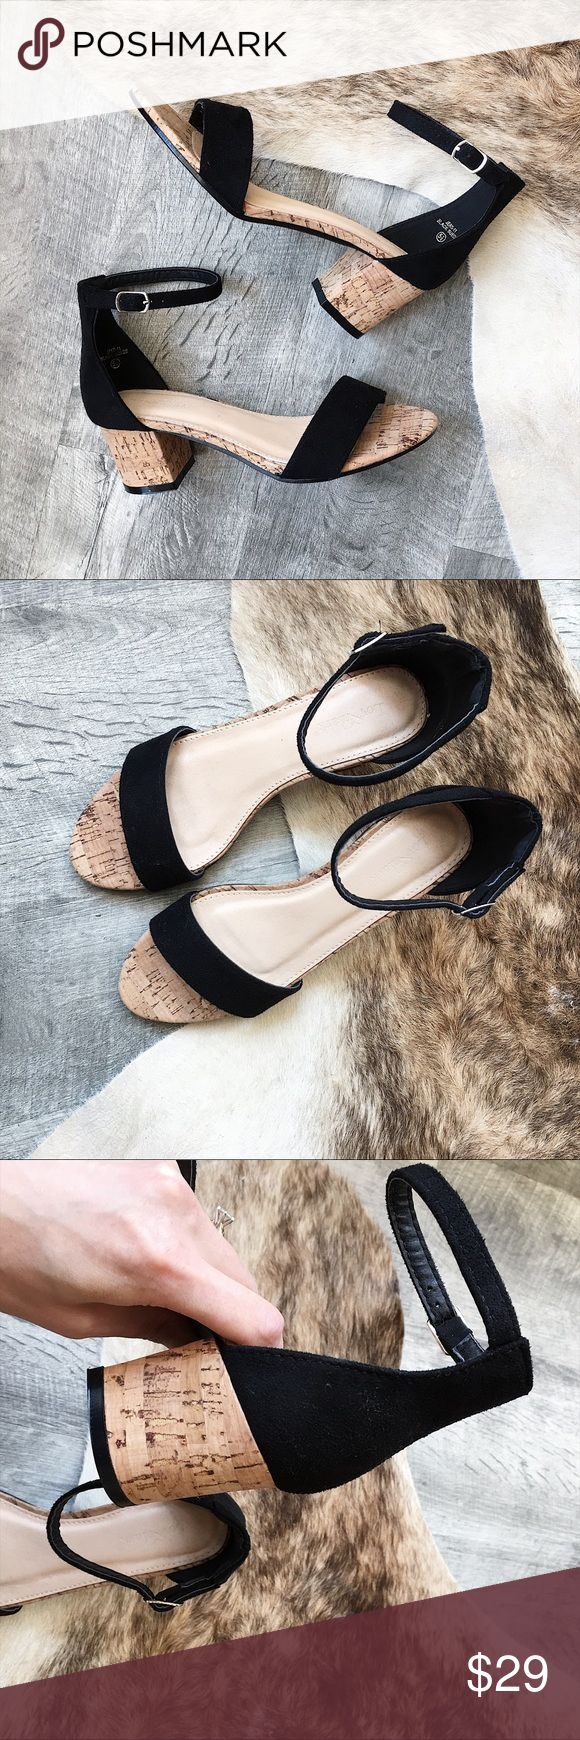 """Cork Heel Sandal Cute minimal sandal with faux black suede upper and adjustable ankle strap and 2.6"""" cork heel! Not ASOS brand but similar style.   * man made  * boutique brand  * New with original box * True to size   👉🏼 Want to negotiate? Please use the offer button. 👉🏼 Bundle with one more item for an instant 20% off! 👉🏼 Sorry, no try-ons or trades. Asos Shoes Sandals"""